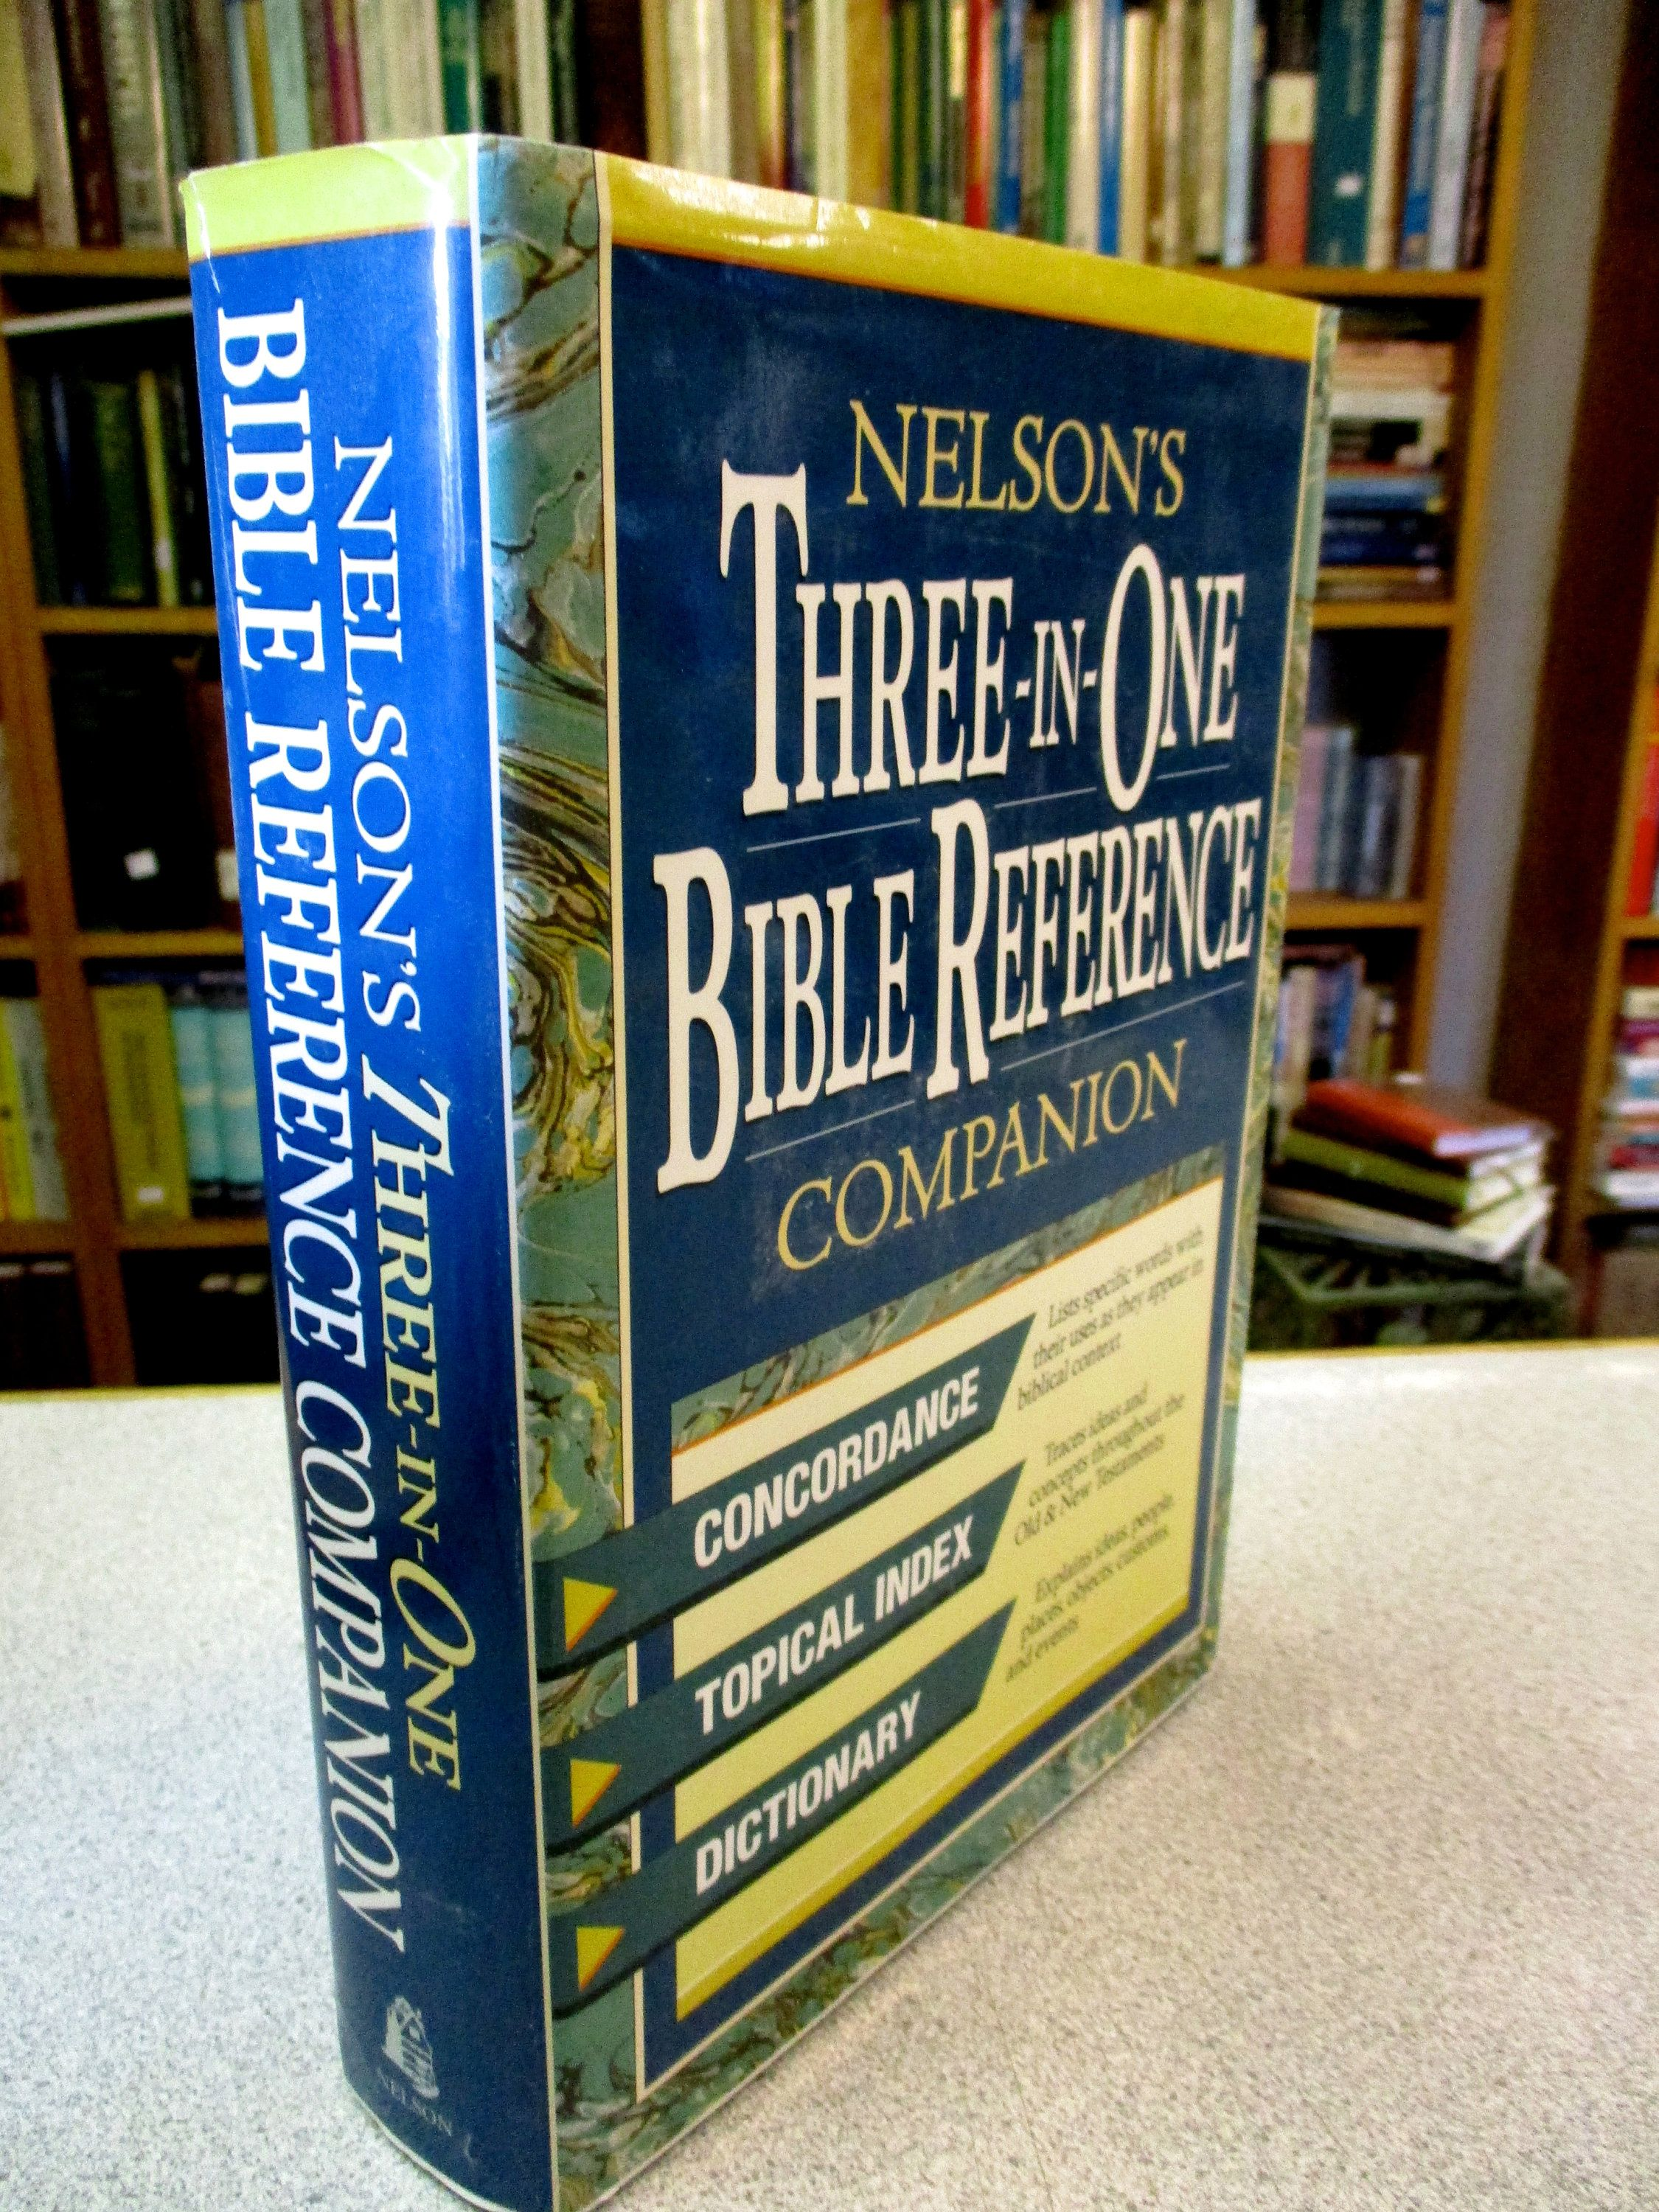 Nelson S Bible Reference Companion Bible Concordance Topical Index